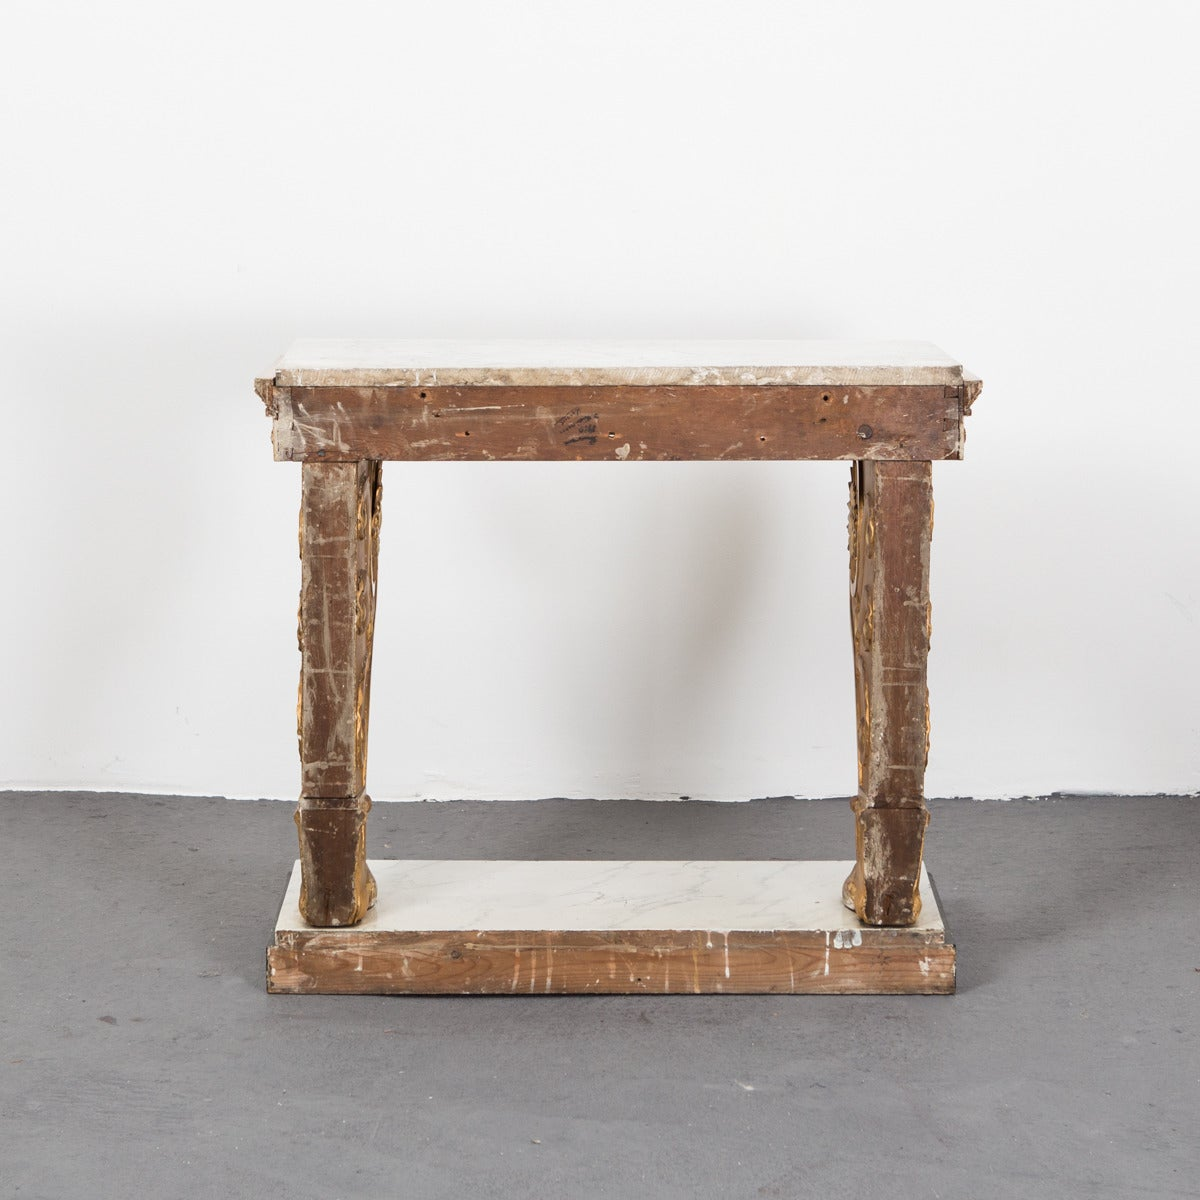 19th Century Table Console Swedish Gilded Carrara Marble Top Empire Neoclassical Sweden For Sale